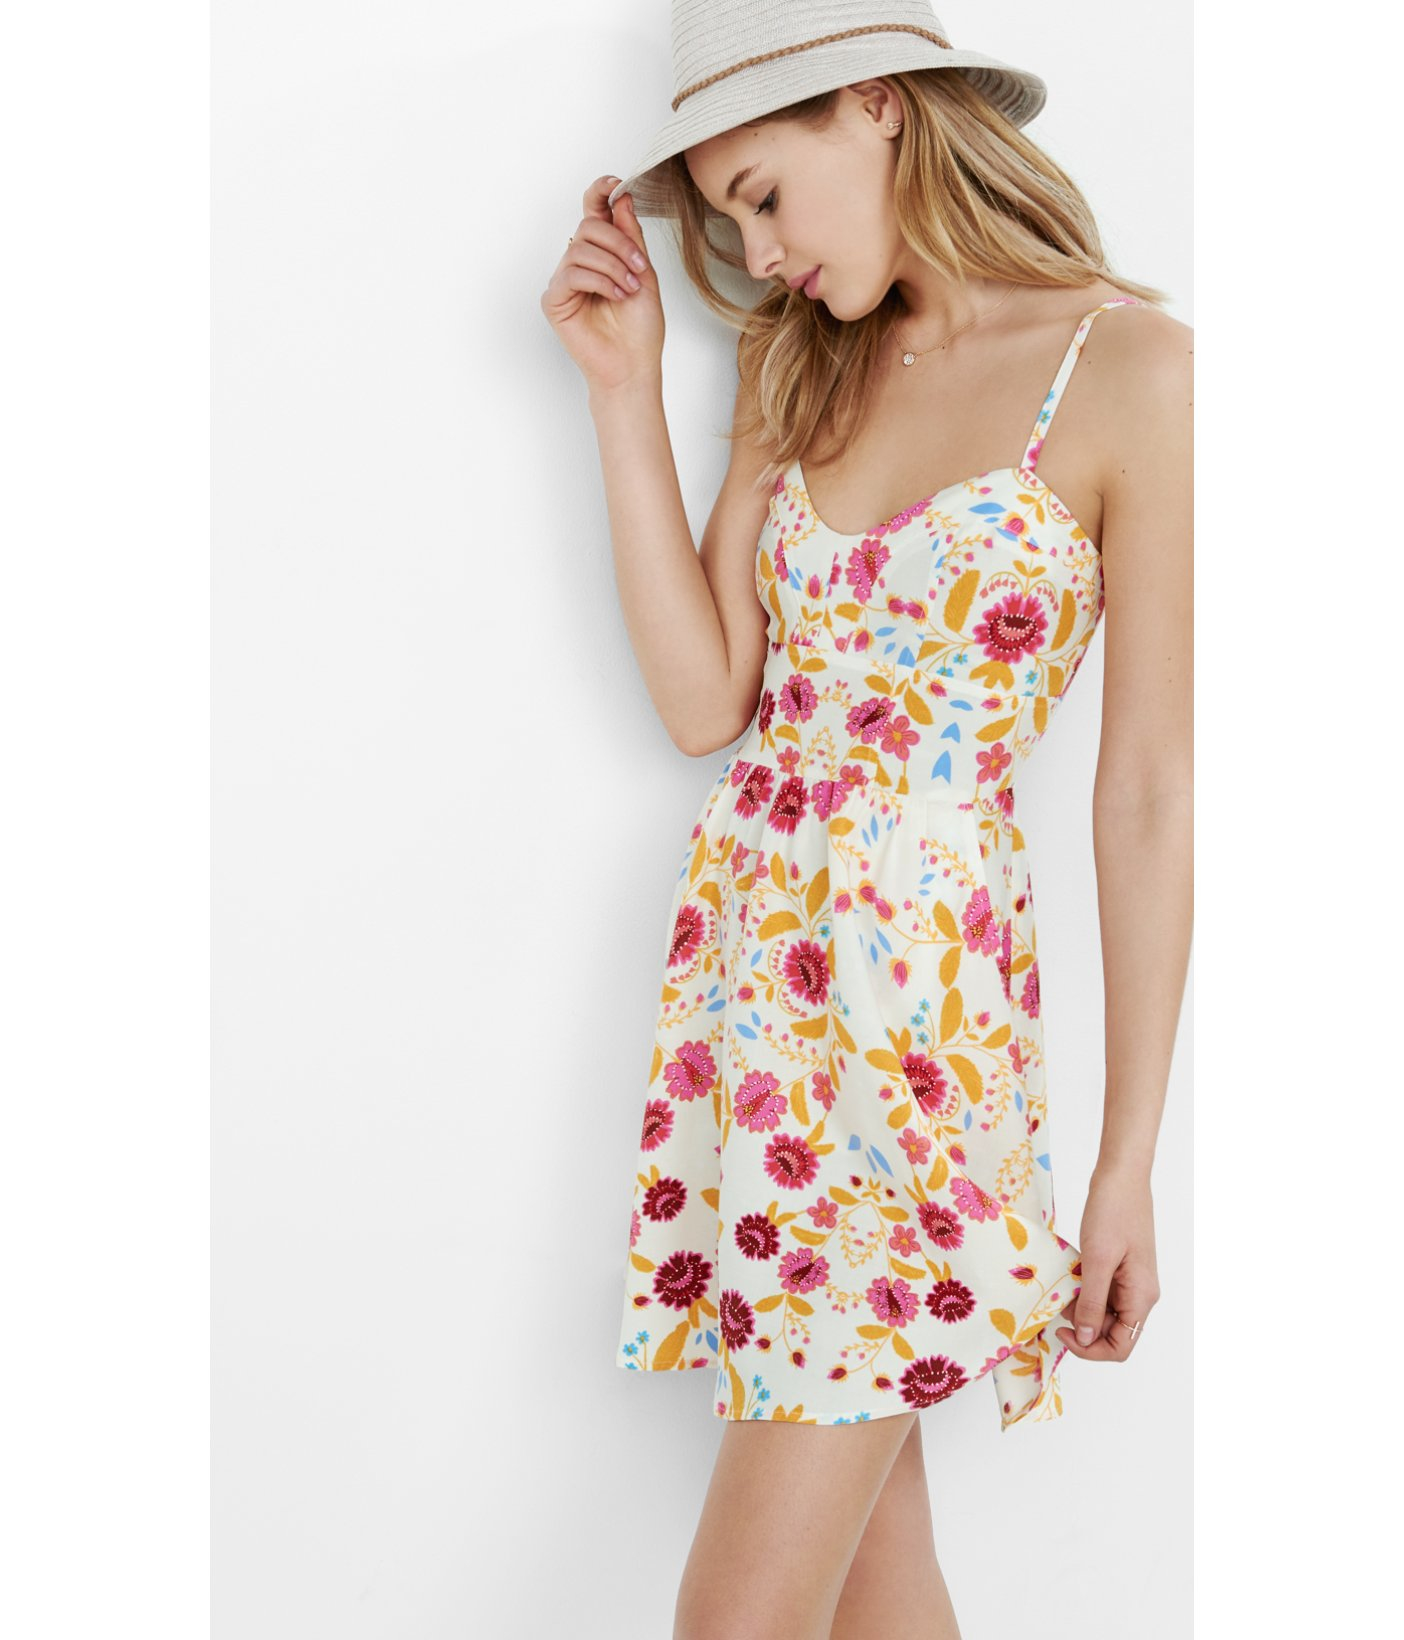 Sweetheart Neckline Sundresses